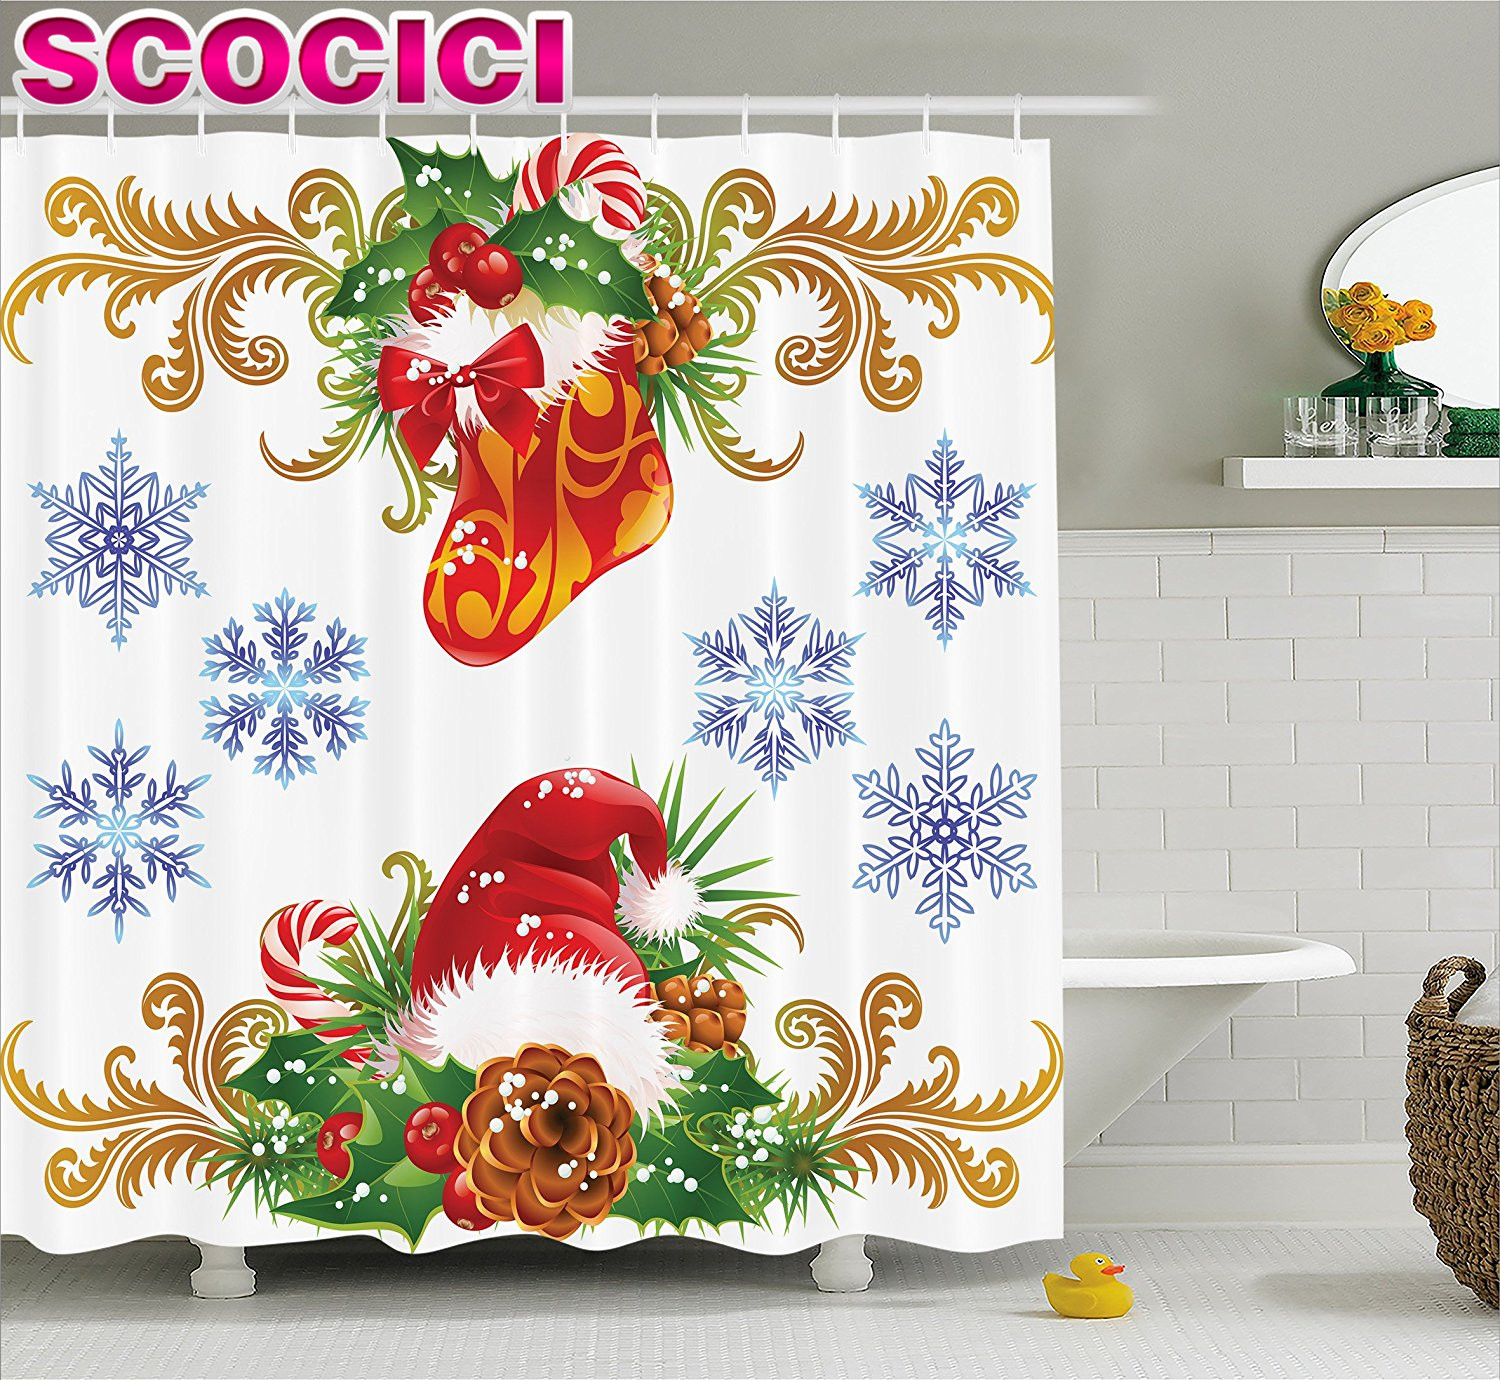 Winter shower curtain - Winter Shower Curtain Ornaments Christmas Retro Decorative With Stocking And Santa Hat Mistletoe Snowflakes Classic Theme